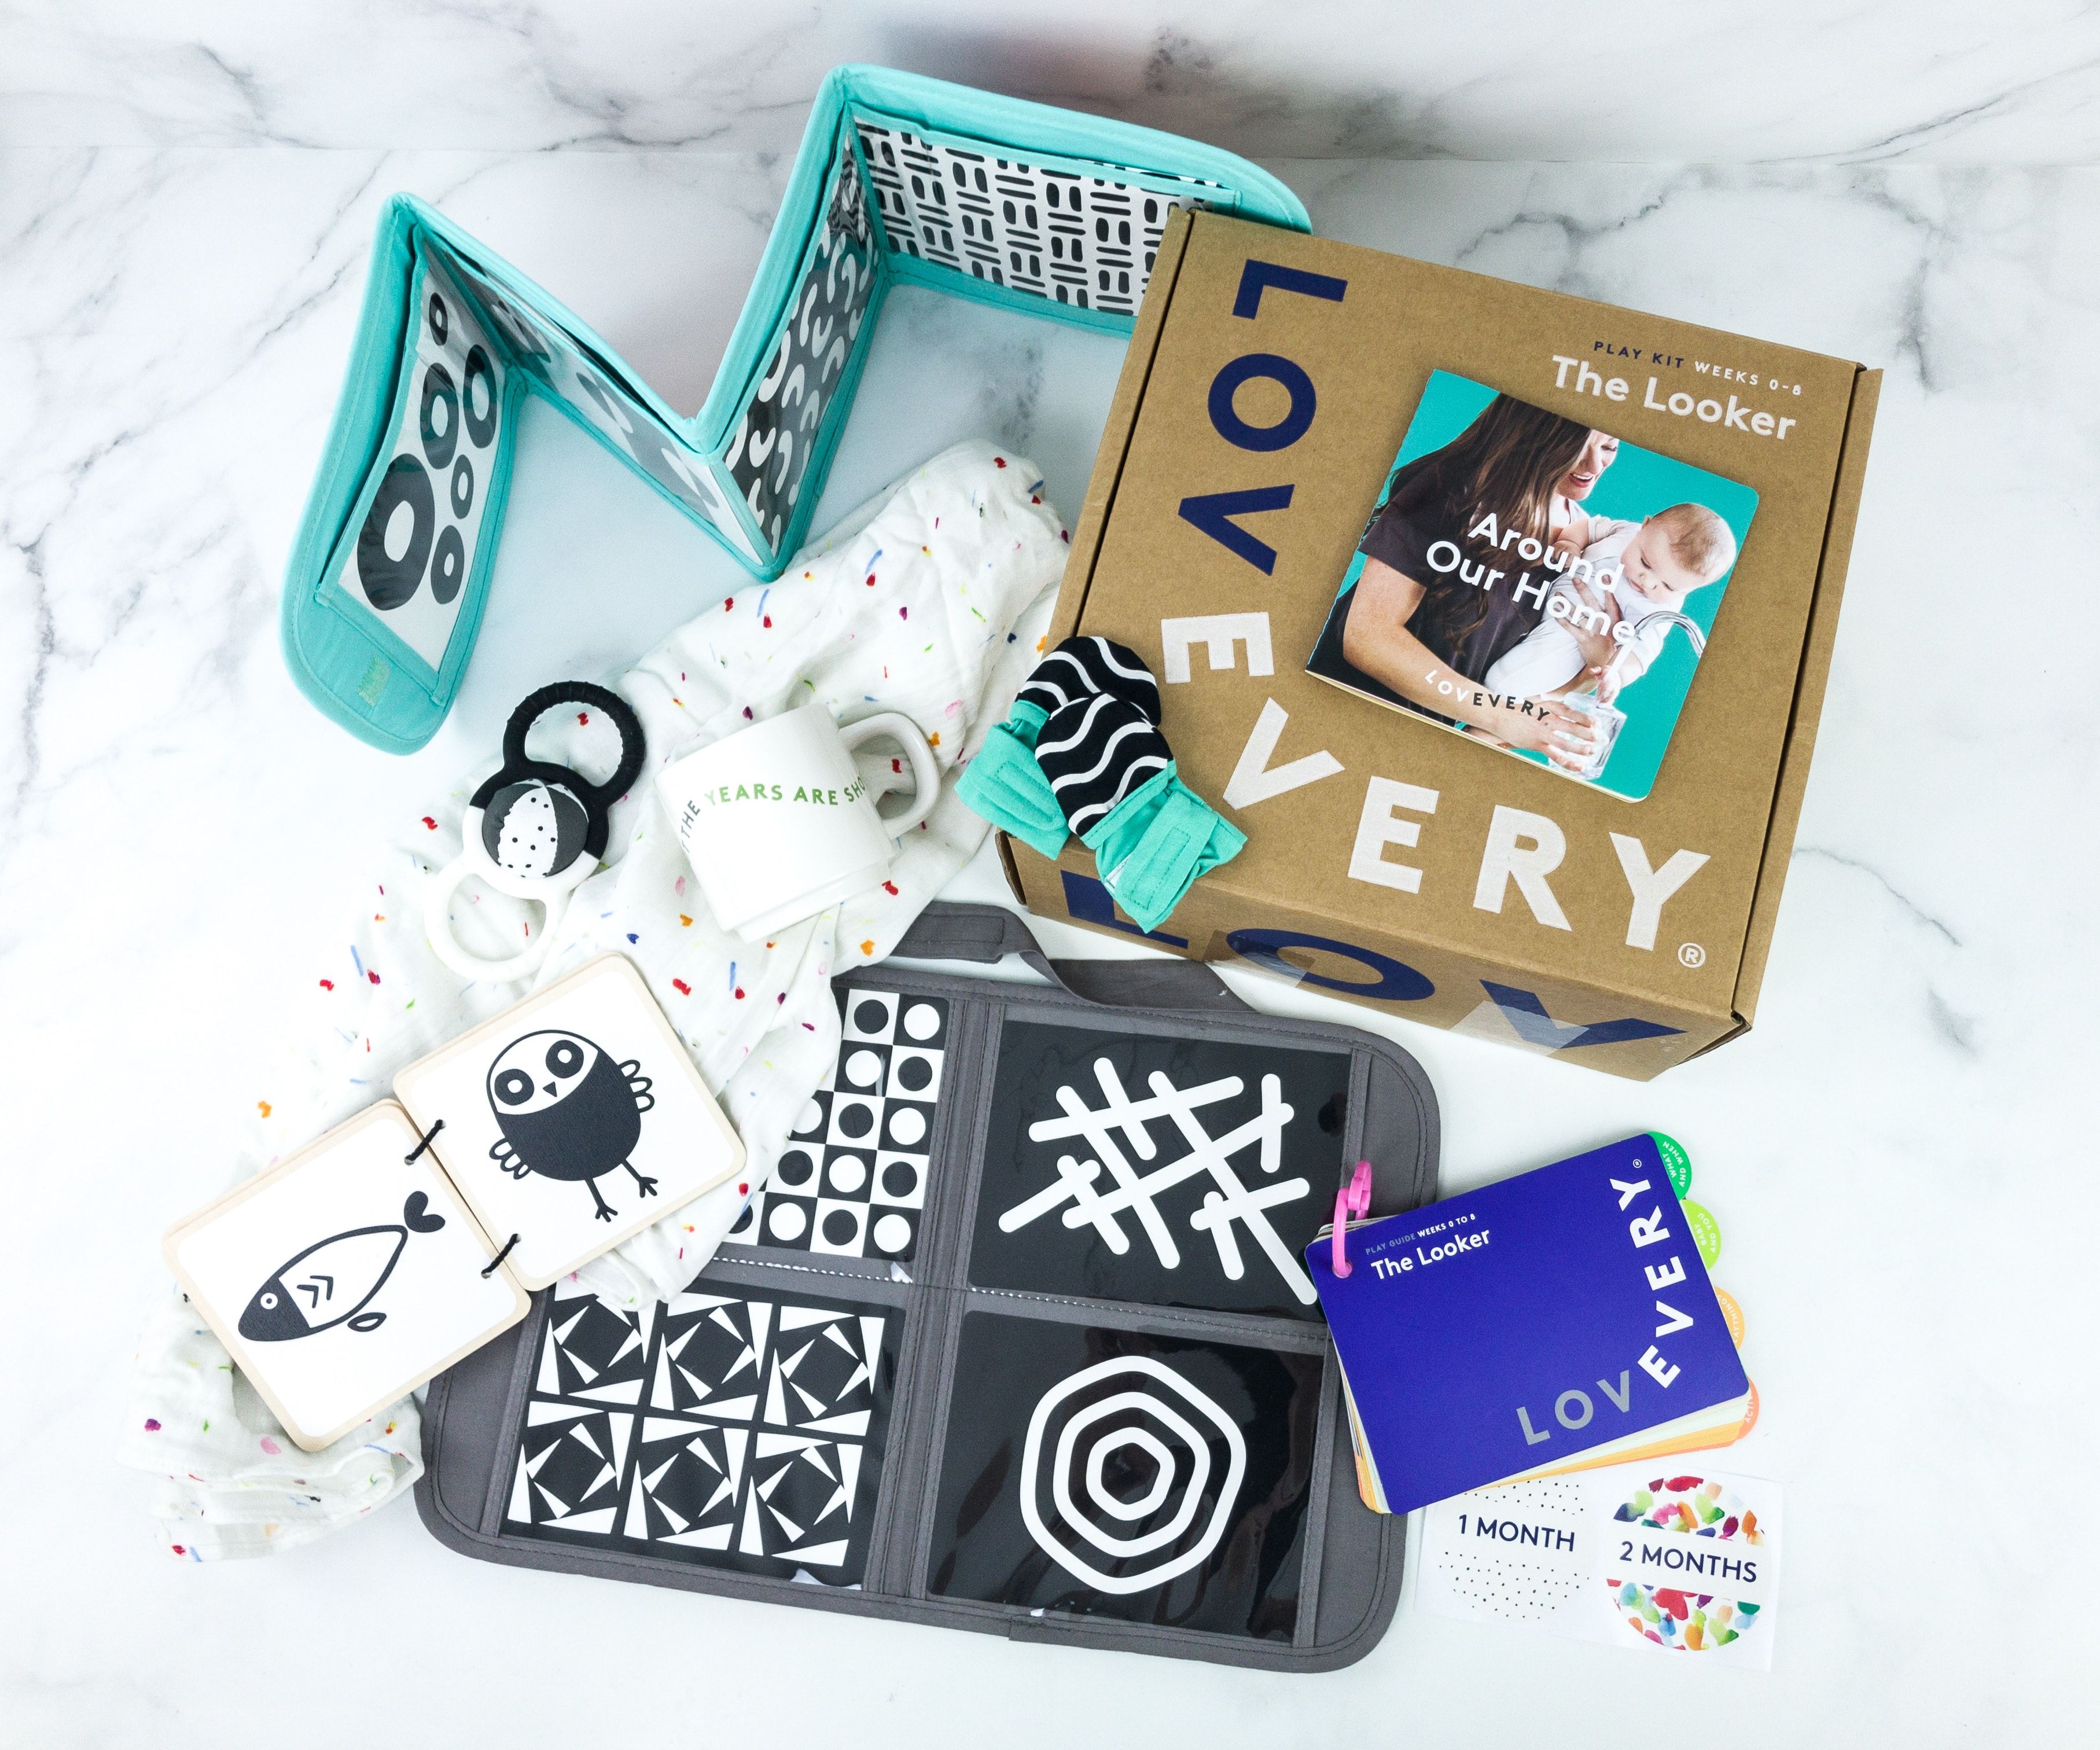 Baby Play Kits by Lovevery Subscription Box Review + Coupon – The Looker!